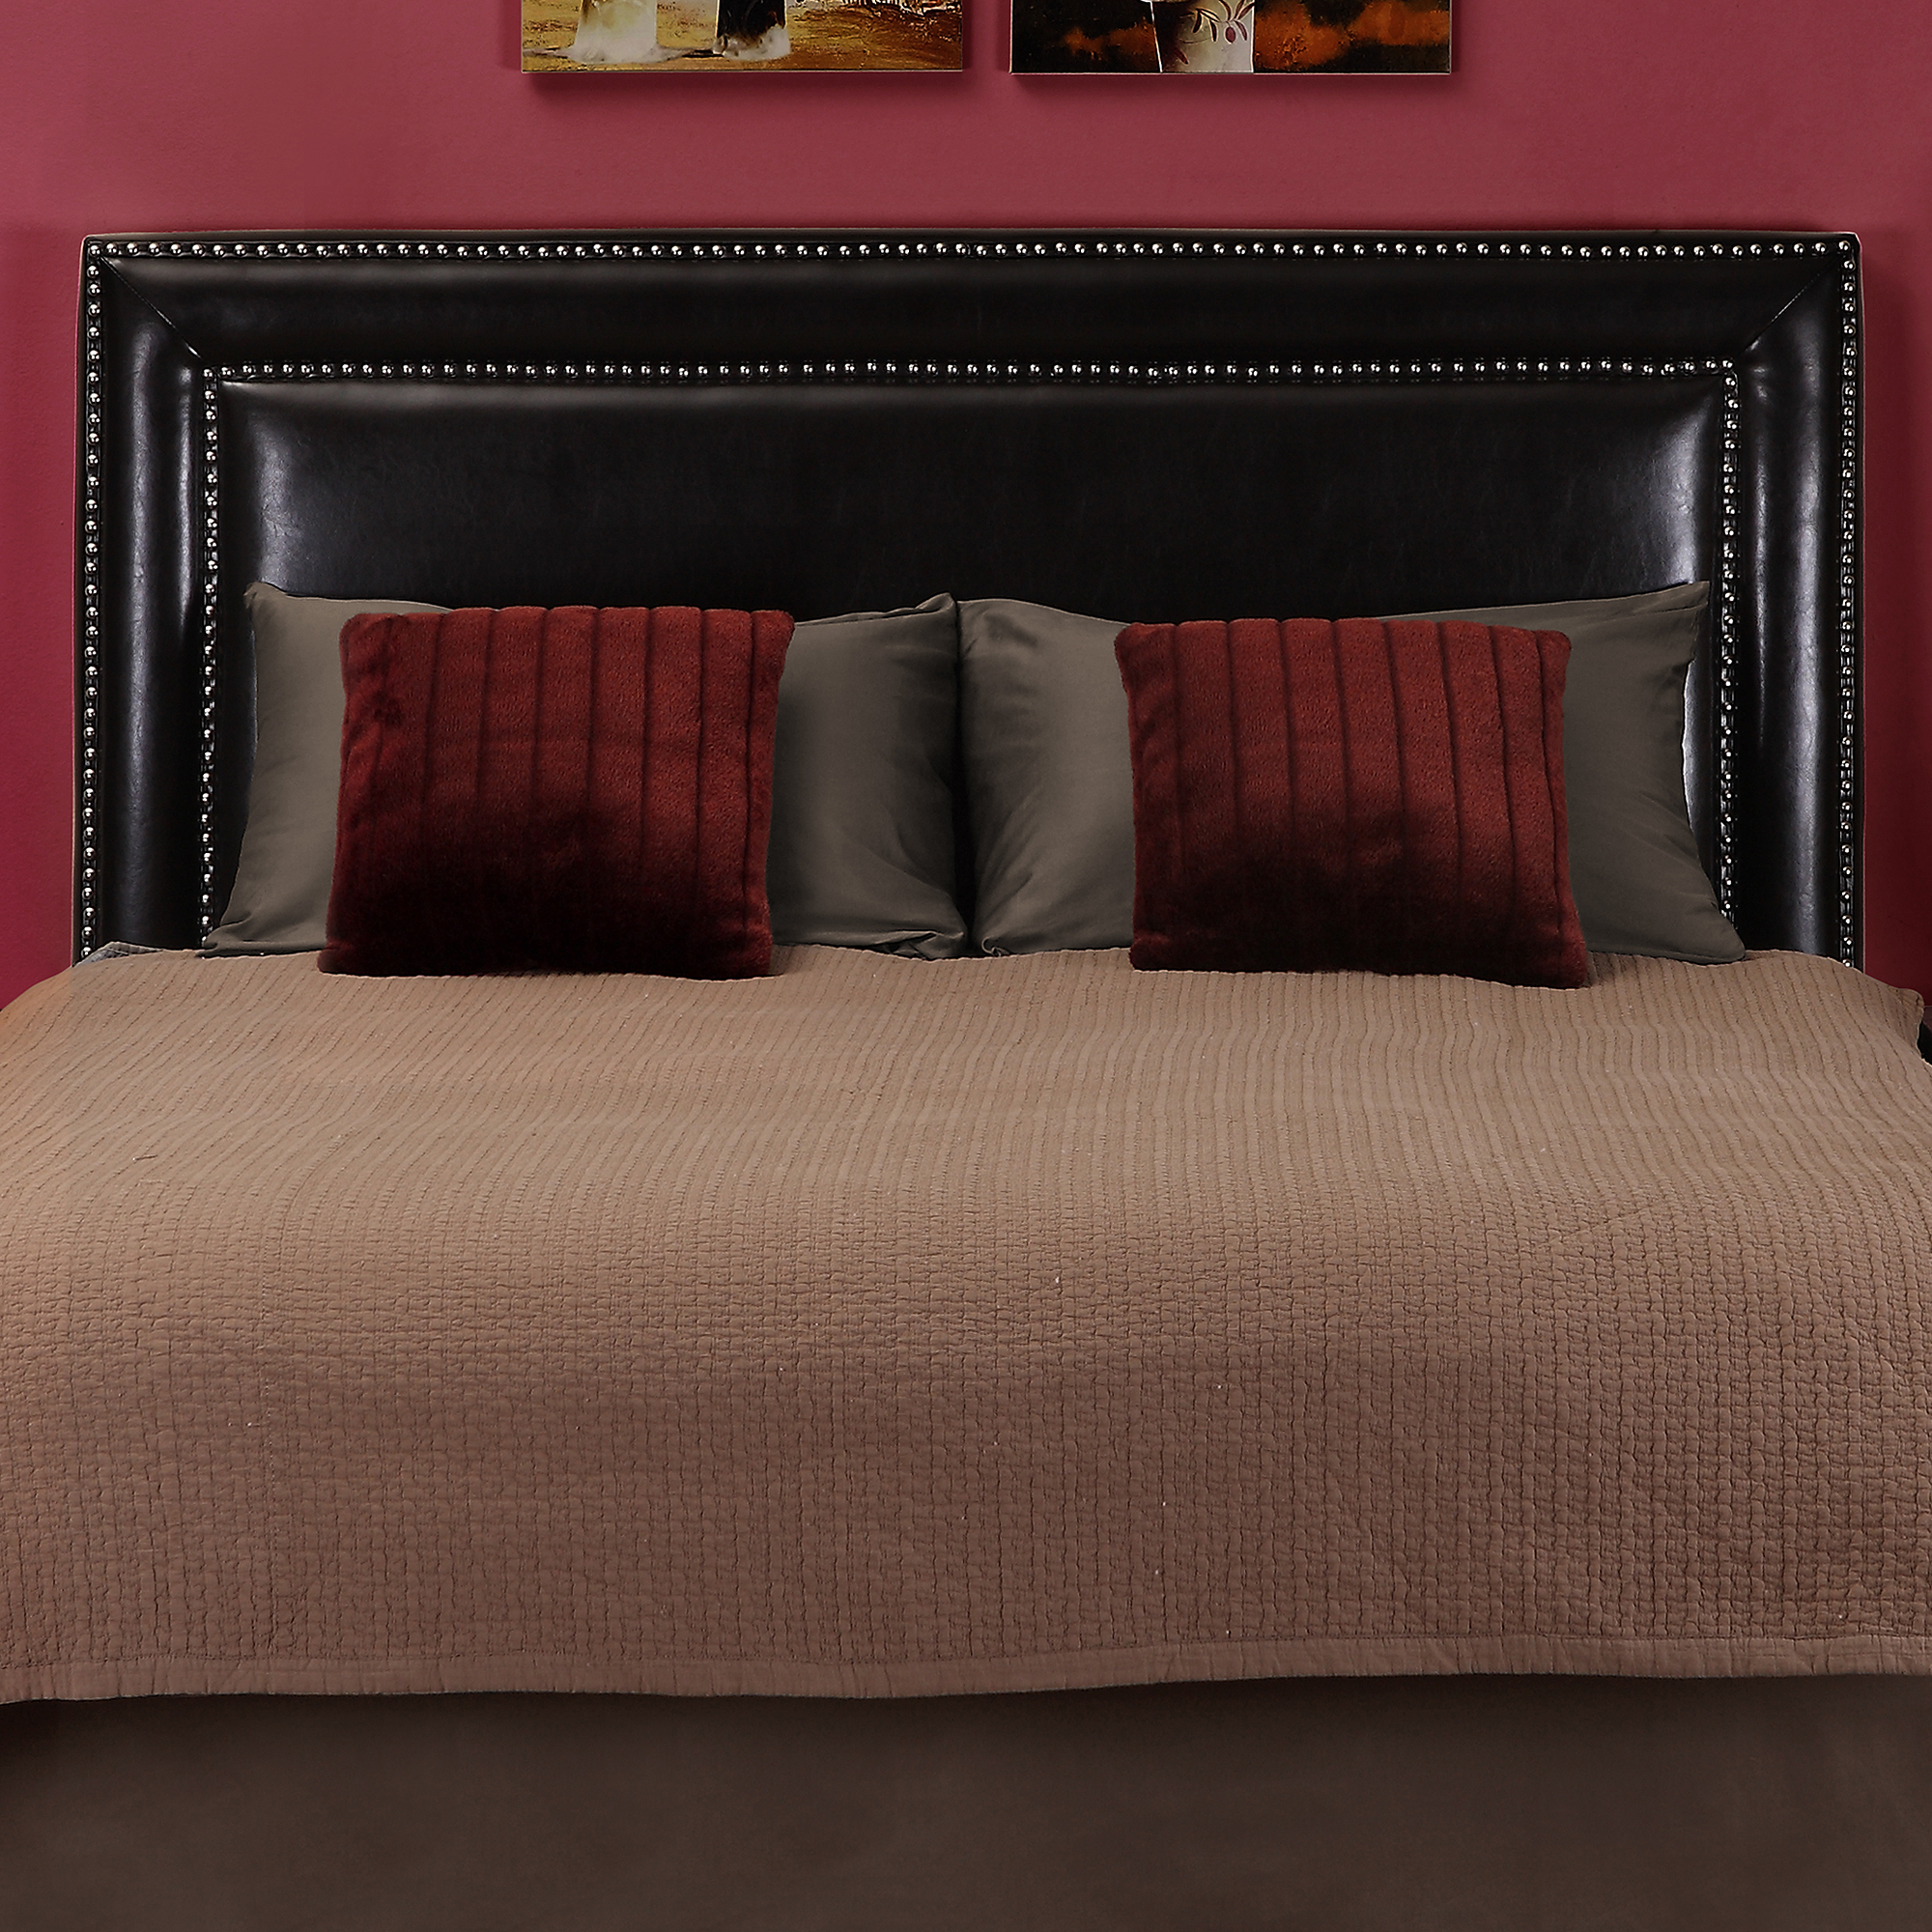 dorel living evanston faux leather full/queen headboard with, Headboard designs